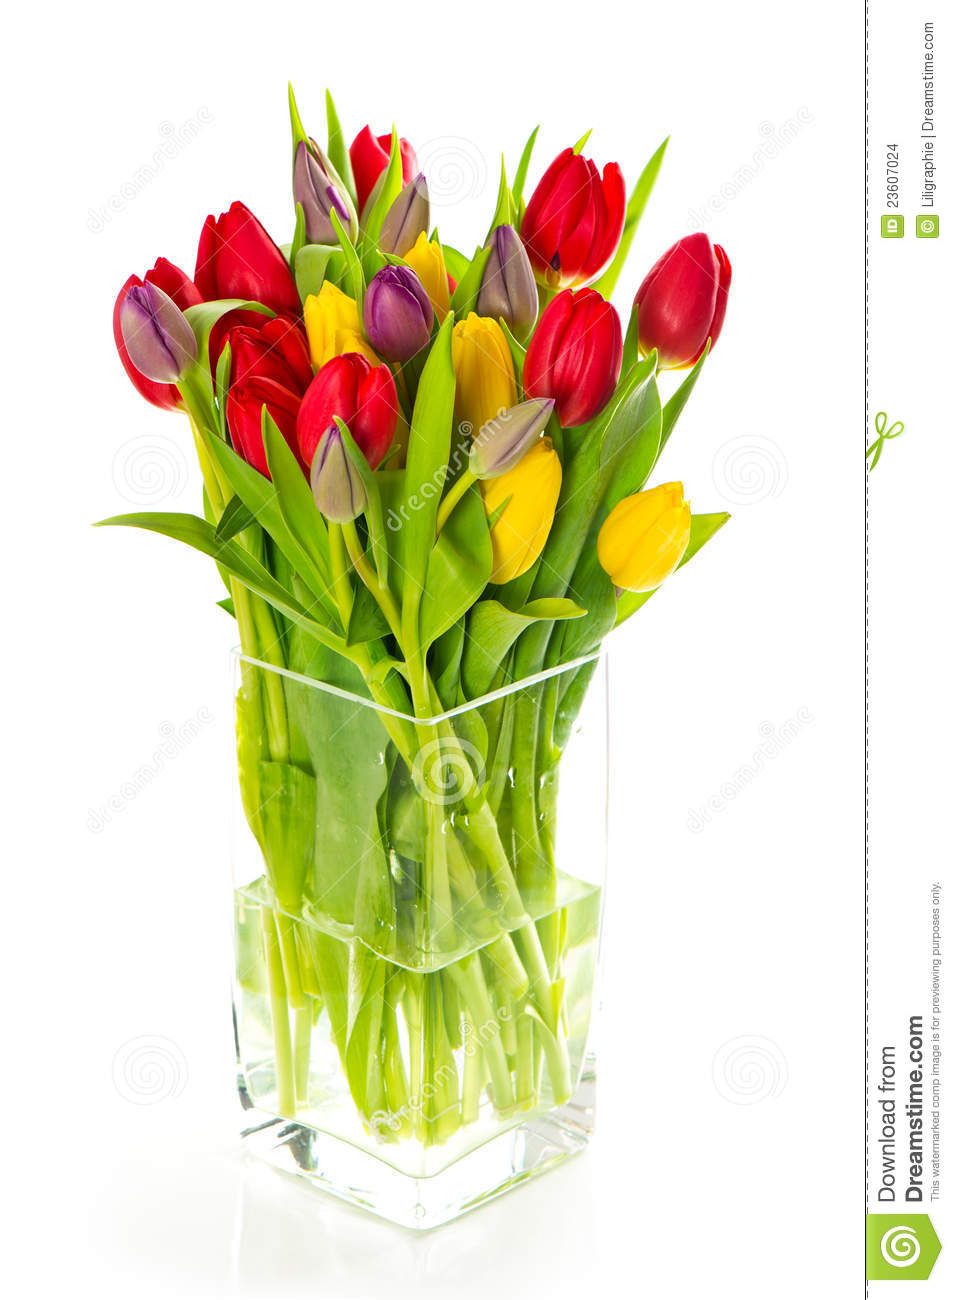 Colorful bouquet of fresh spring tulip flowers stock photo image download colorful bouquet of fresh spring tulip flowers stock photo image of gift arrangement izmirmasajfo